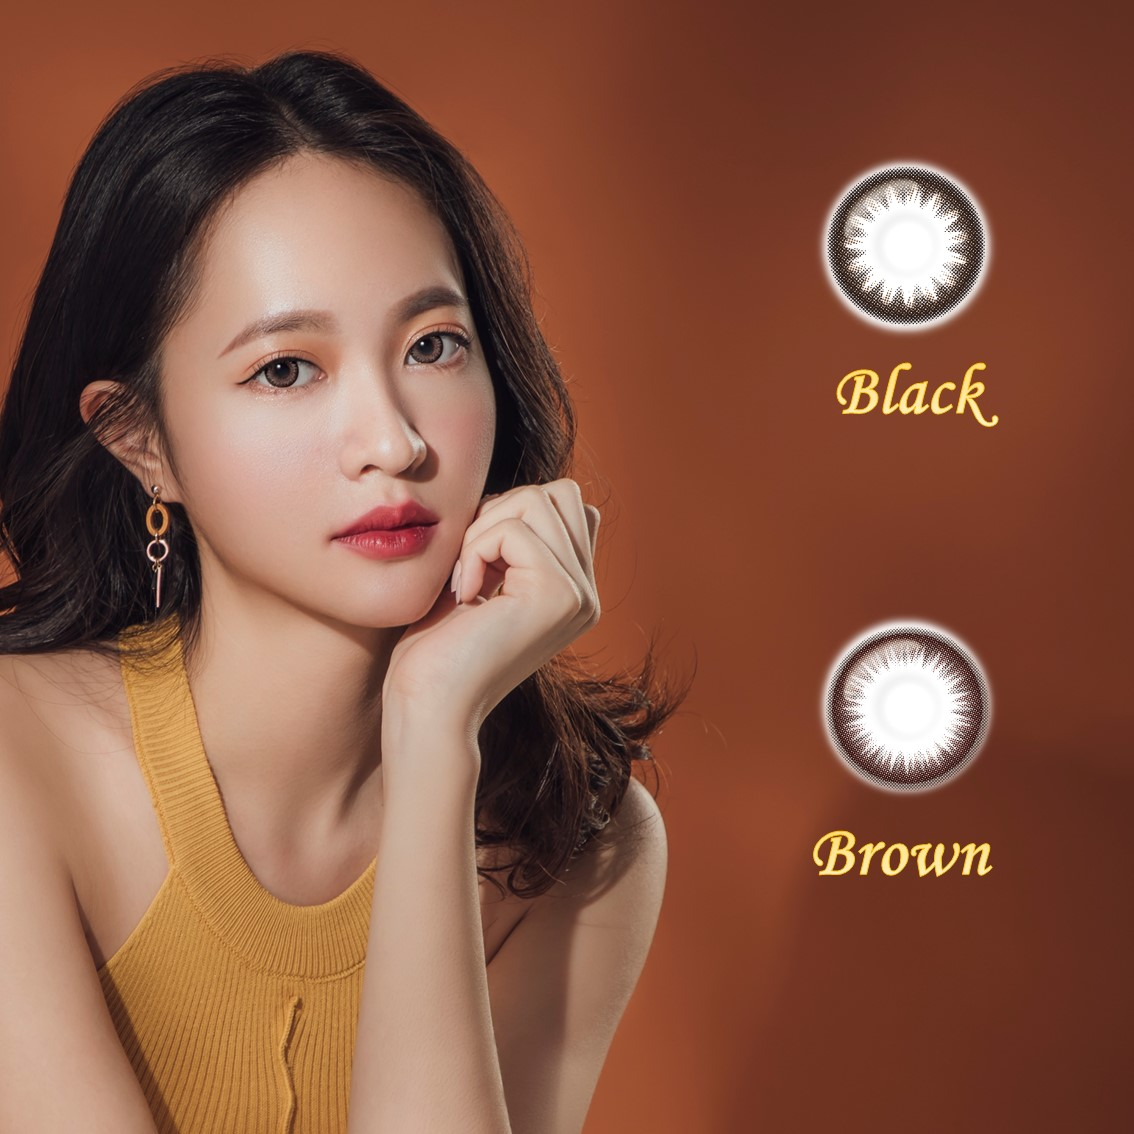 New Design   1-Day Colored Contact Lenses   Natural Black Brown   OEM Welcome   Bestseller   Wholesale